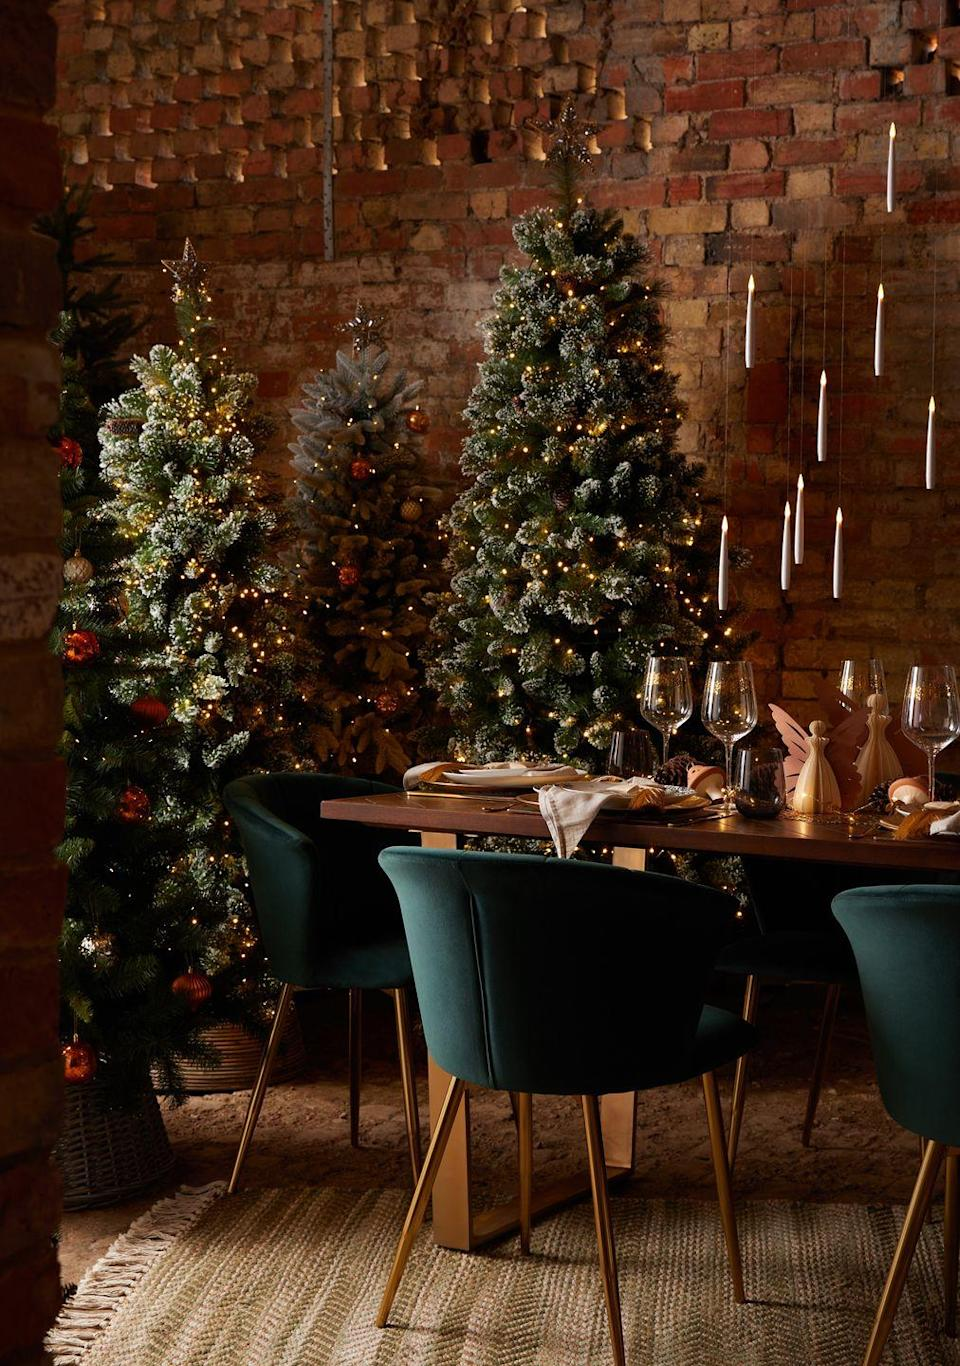 """<p>As part of Dunelm's Winter Solstice trend, you'll discover gorgeous rich hues (think bottle greens and berry reds), plus glitter-free decorations, stylish <a href=""""https://www.housebeautiful.com/uk/decorate/looks/g22581402/christmas-tree-skirts/"""" rel=""""nofollow noopener"""" target=""""_blank"""" data-ylk=""""slk:tree skirts"""" class=""""link rapid-noclick-resp"""">tree skirts</a>, and cute woodland animal figurines. Christmas might be a long way off, but the new range is certainly getting us excited for the holidays...</p>"""